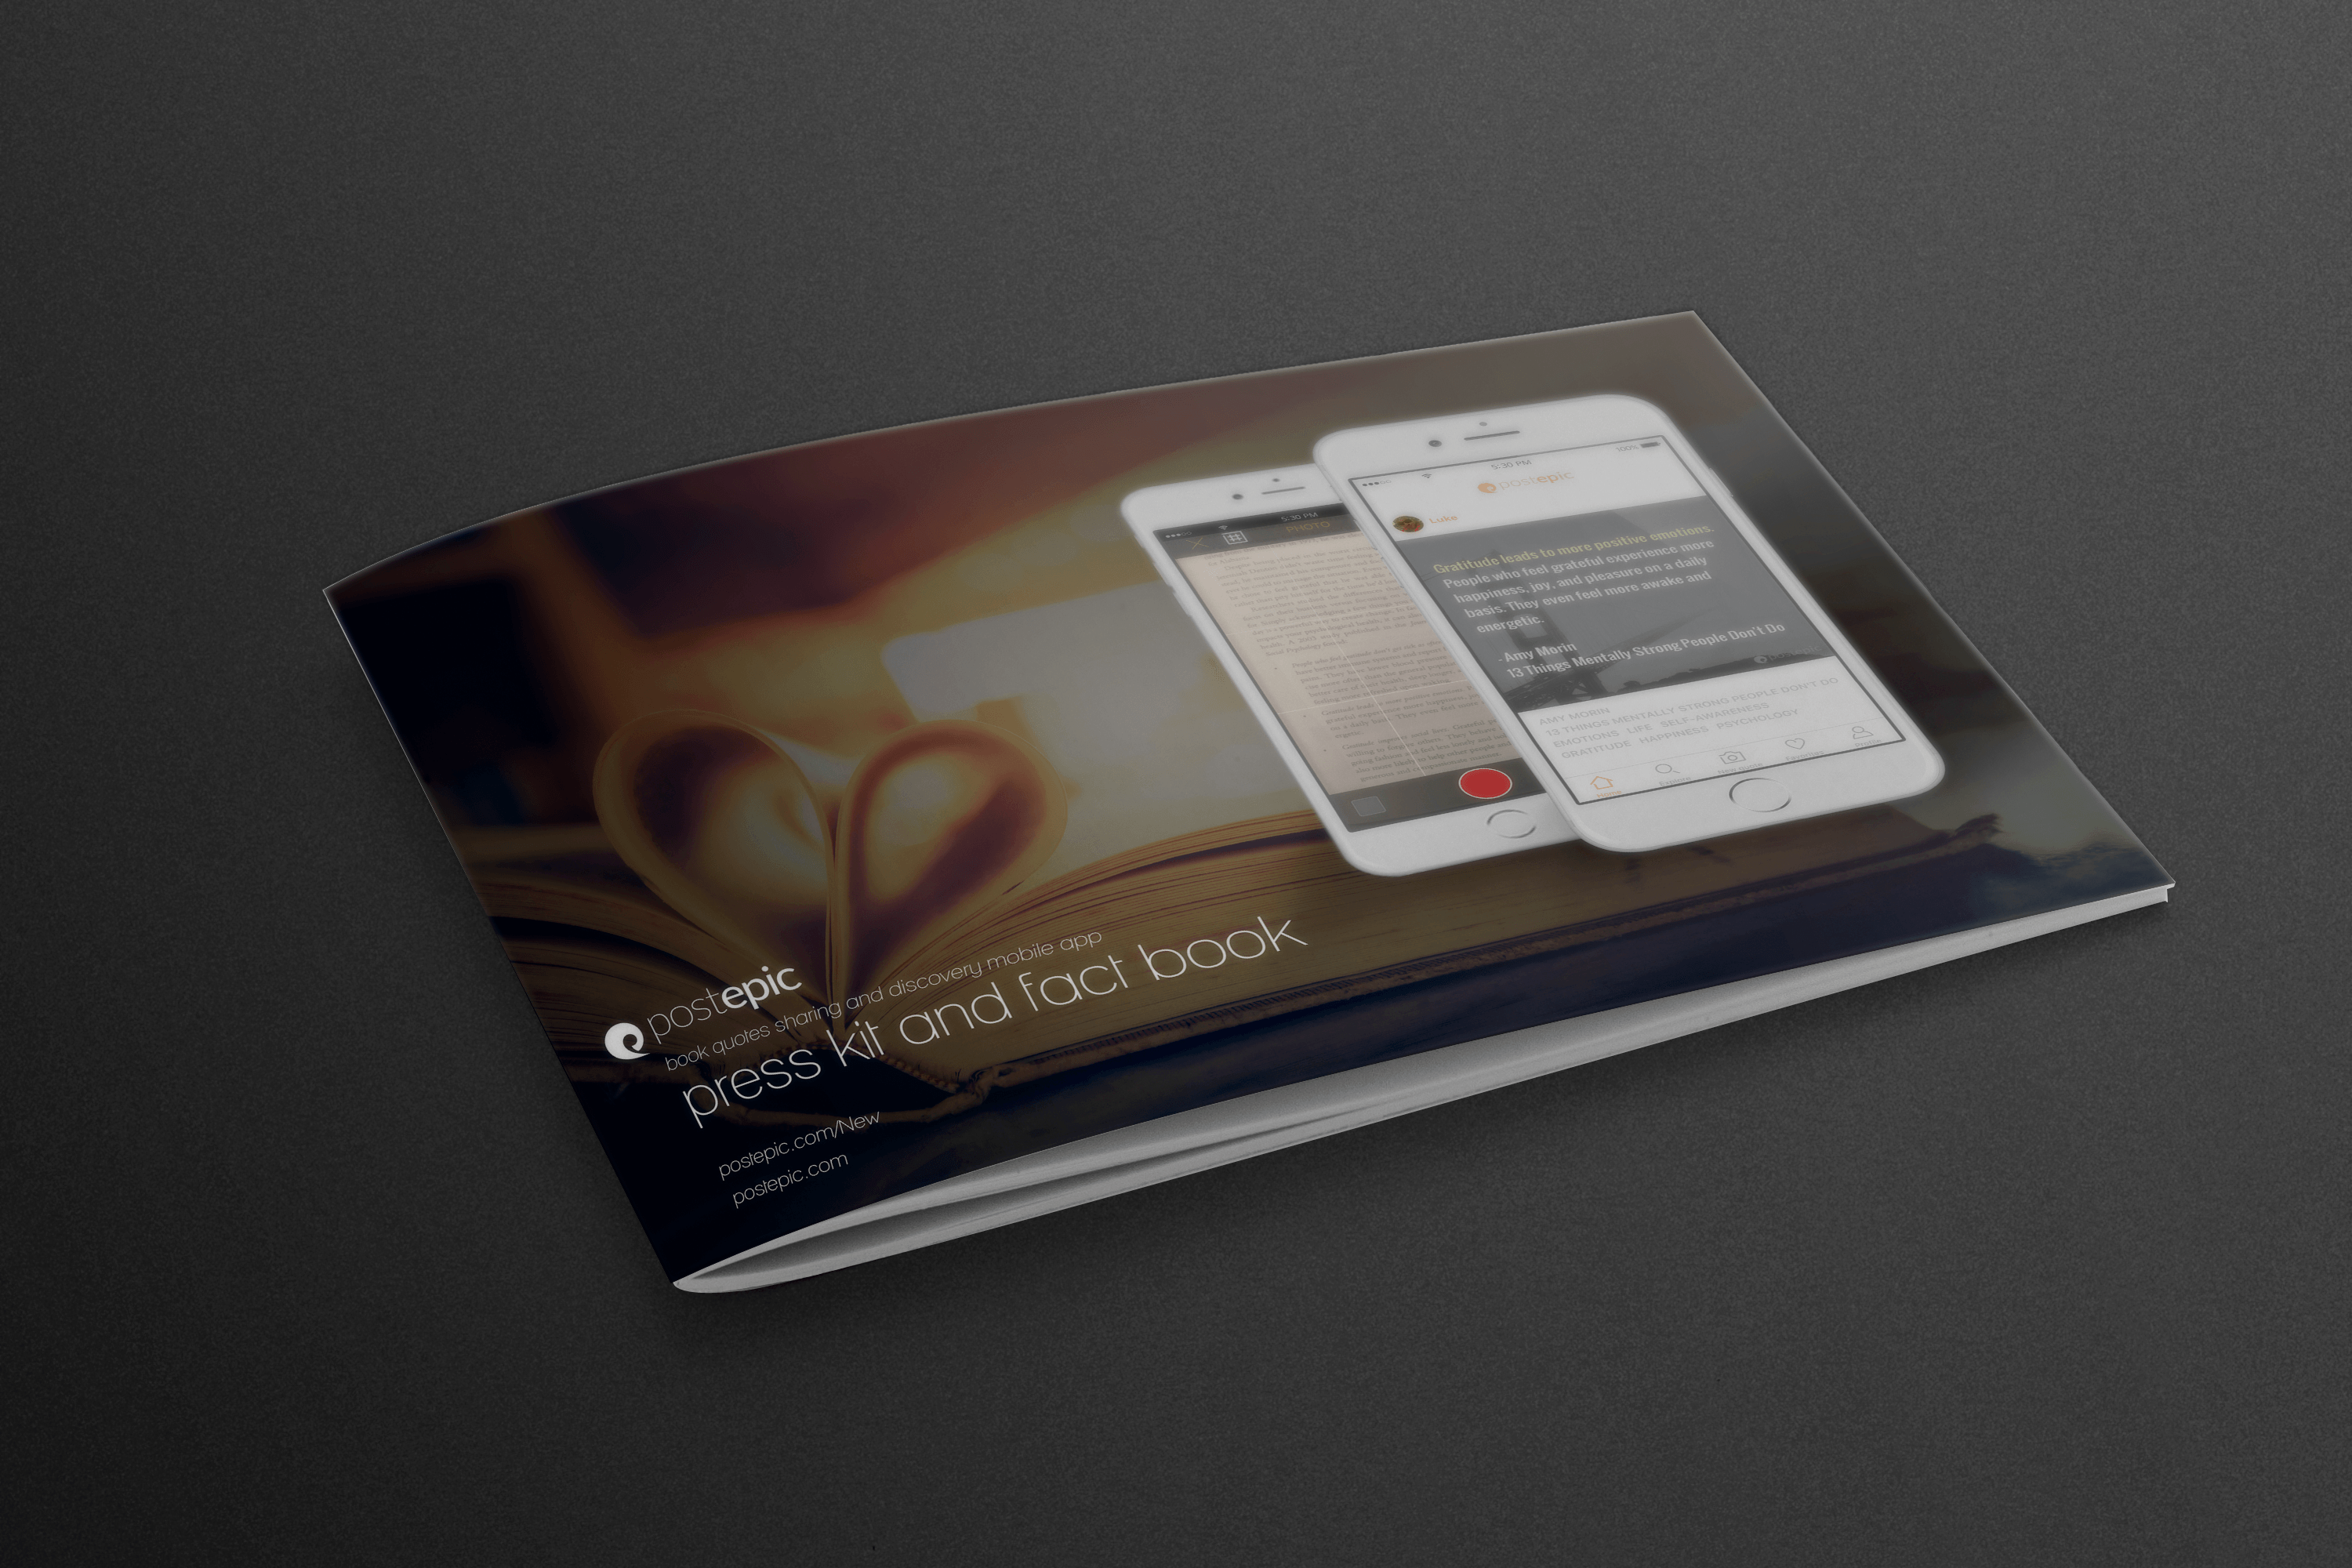 Postepic mobile app press kit design